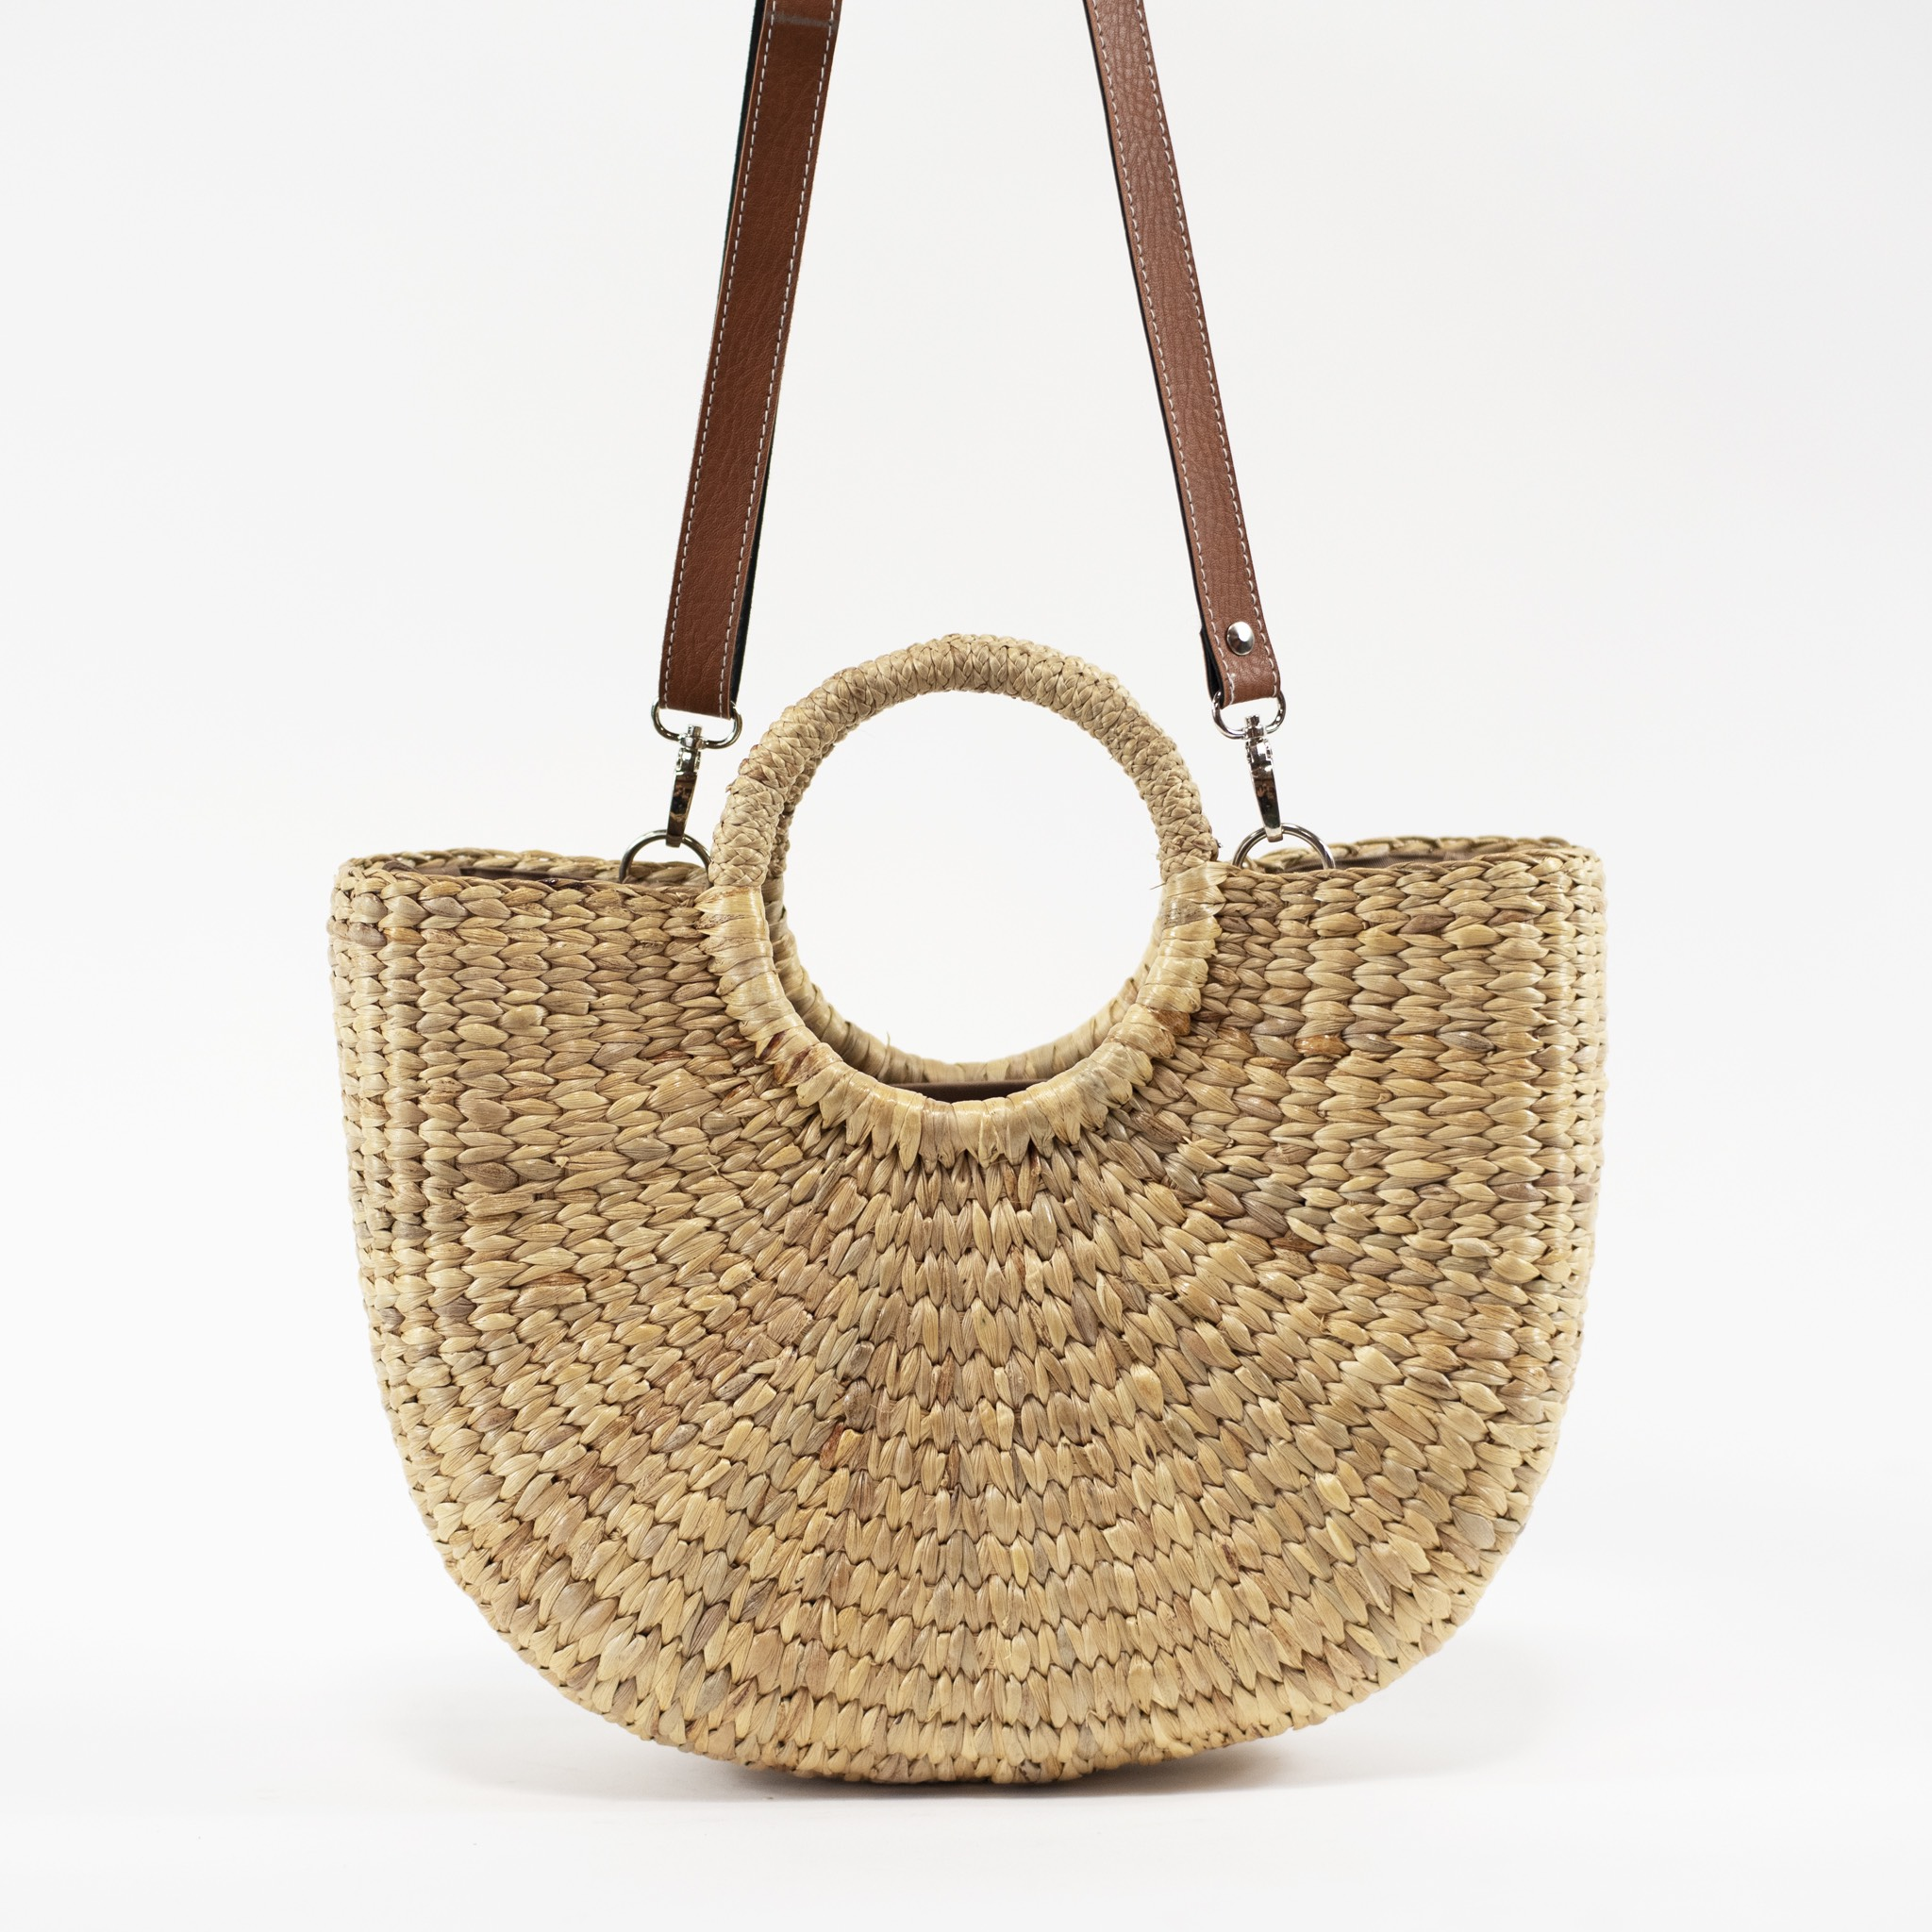 Handwoven Seagrass handbag made by Sea & Grass  SEA & GRASS